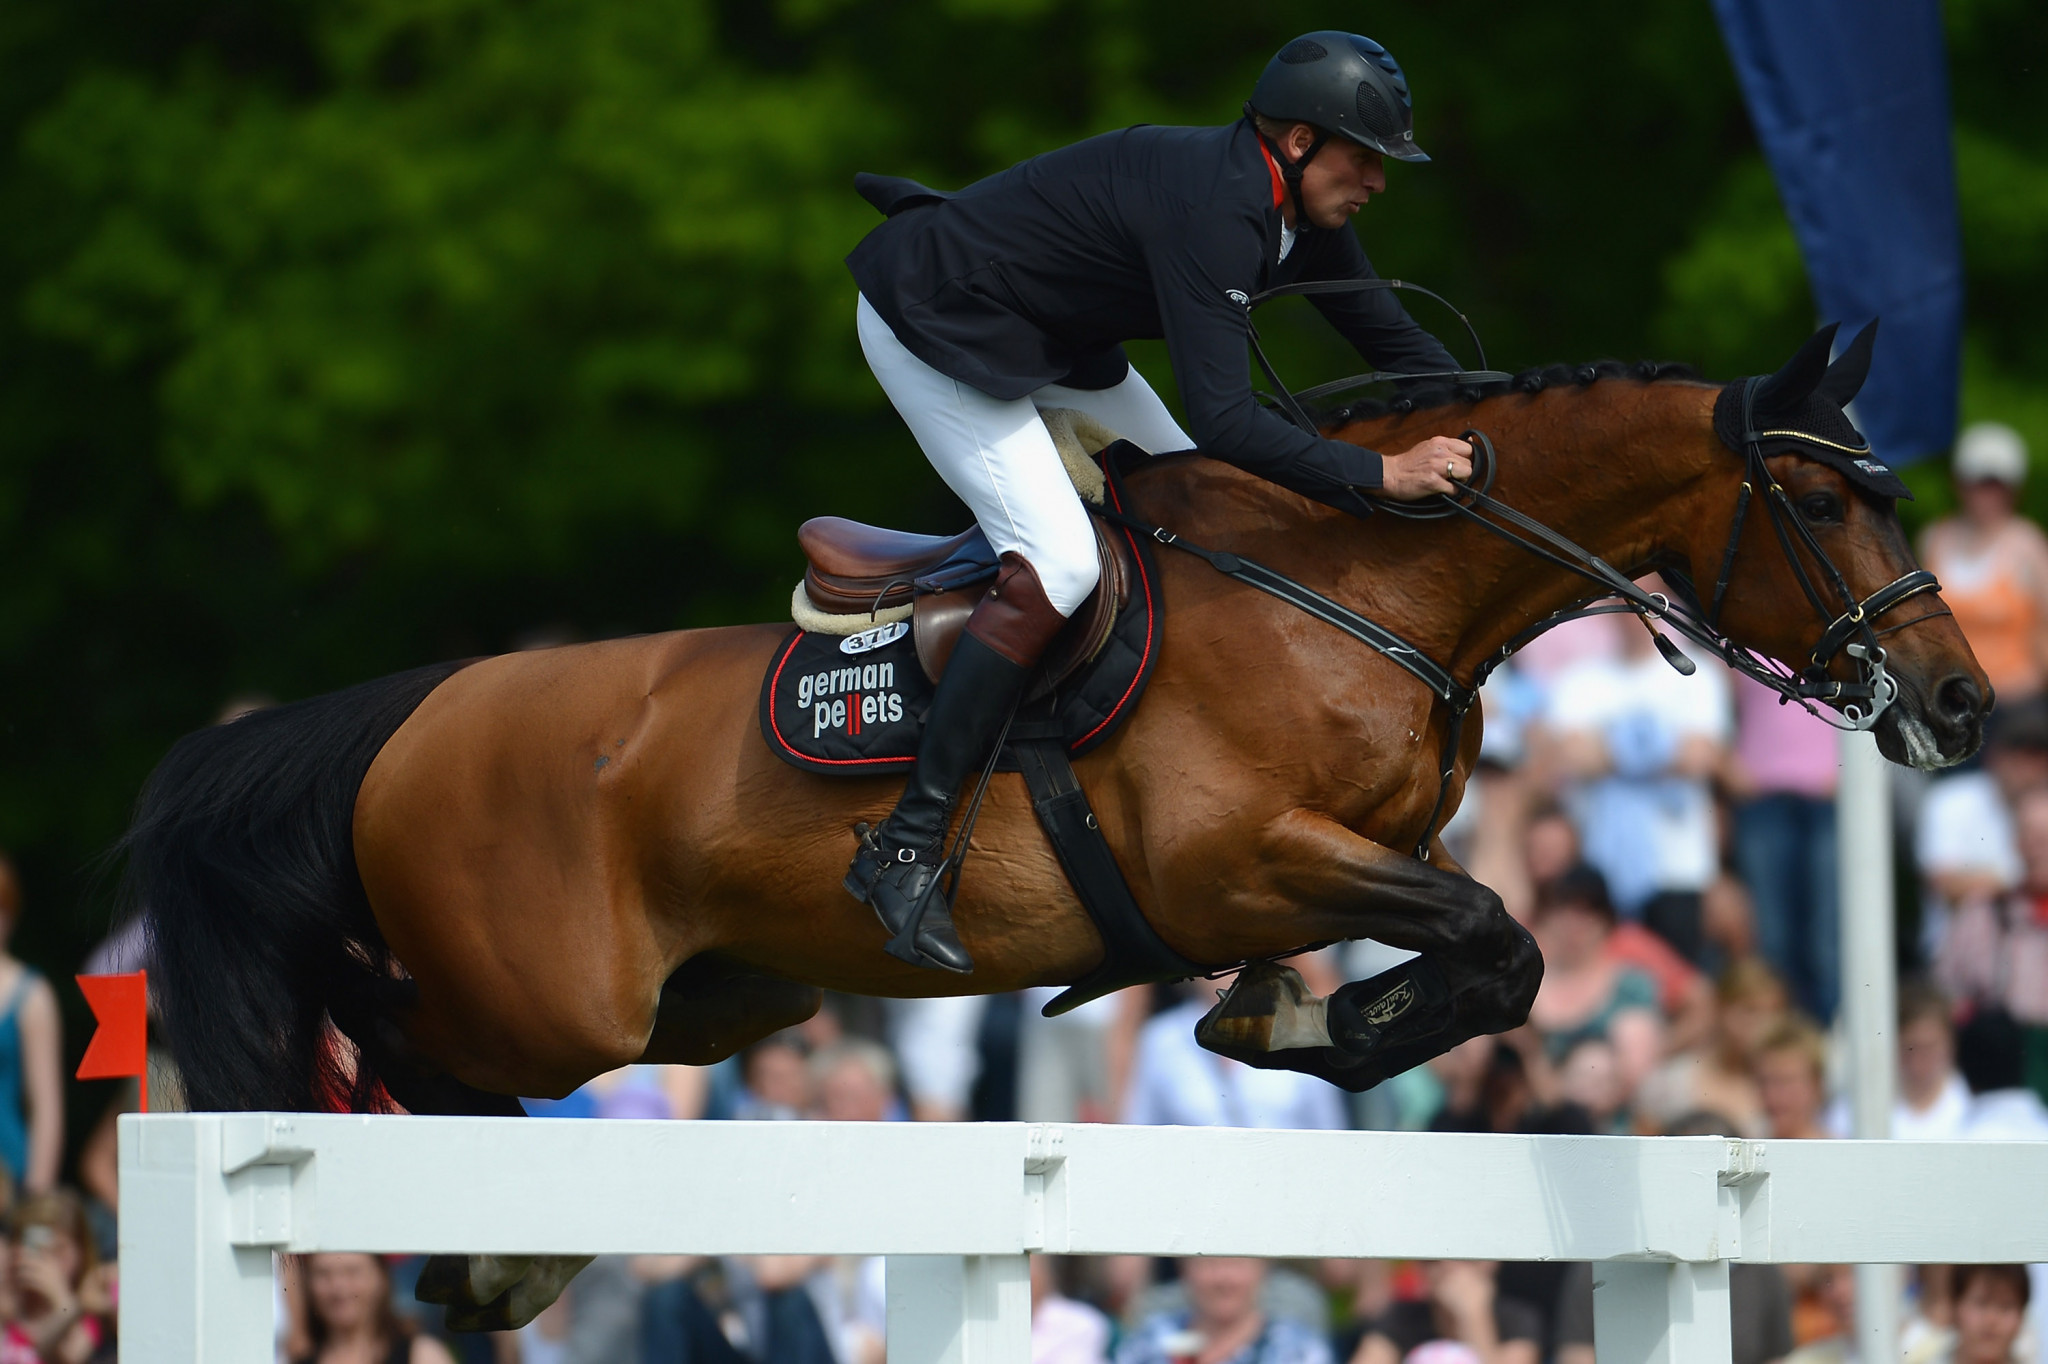 """Germany's André Thieme finished in second place in the """"Prize of Handwerk"""" jumping competition ©Getty Images"""